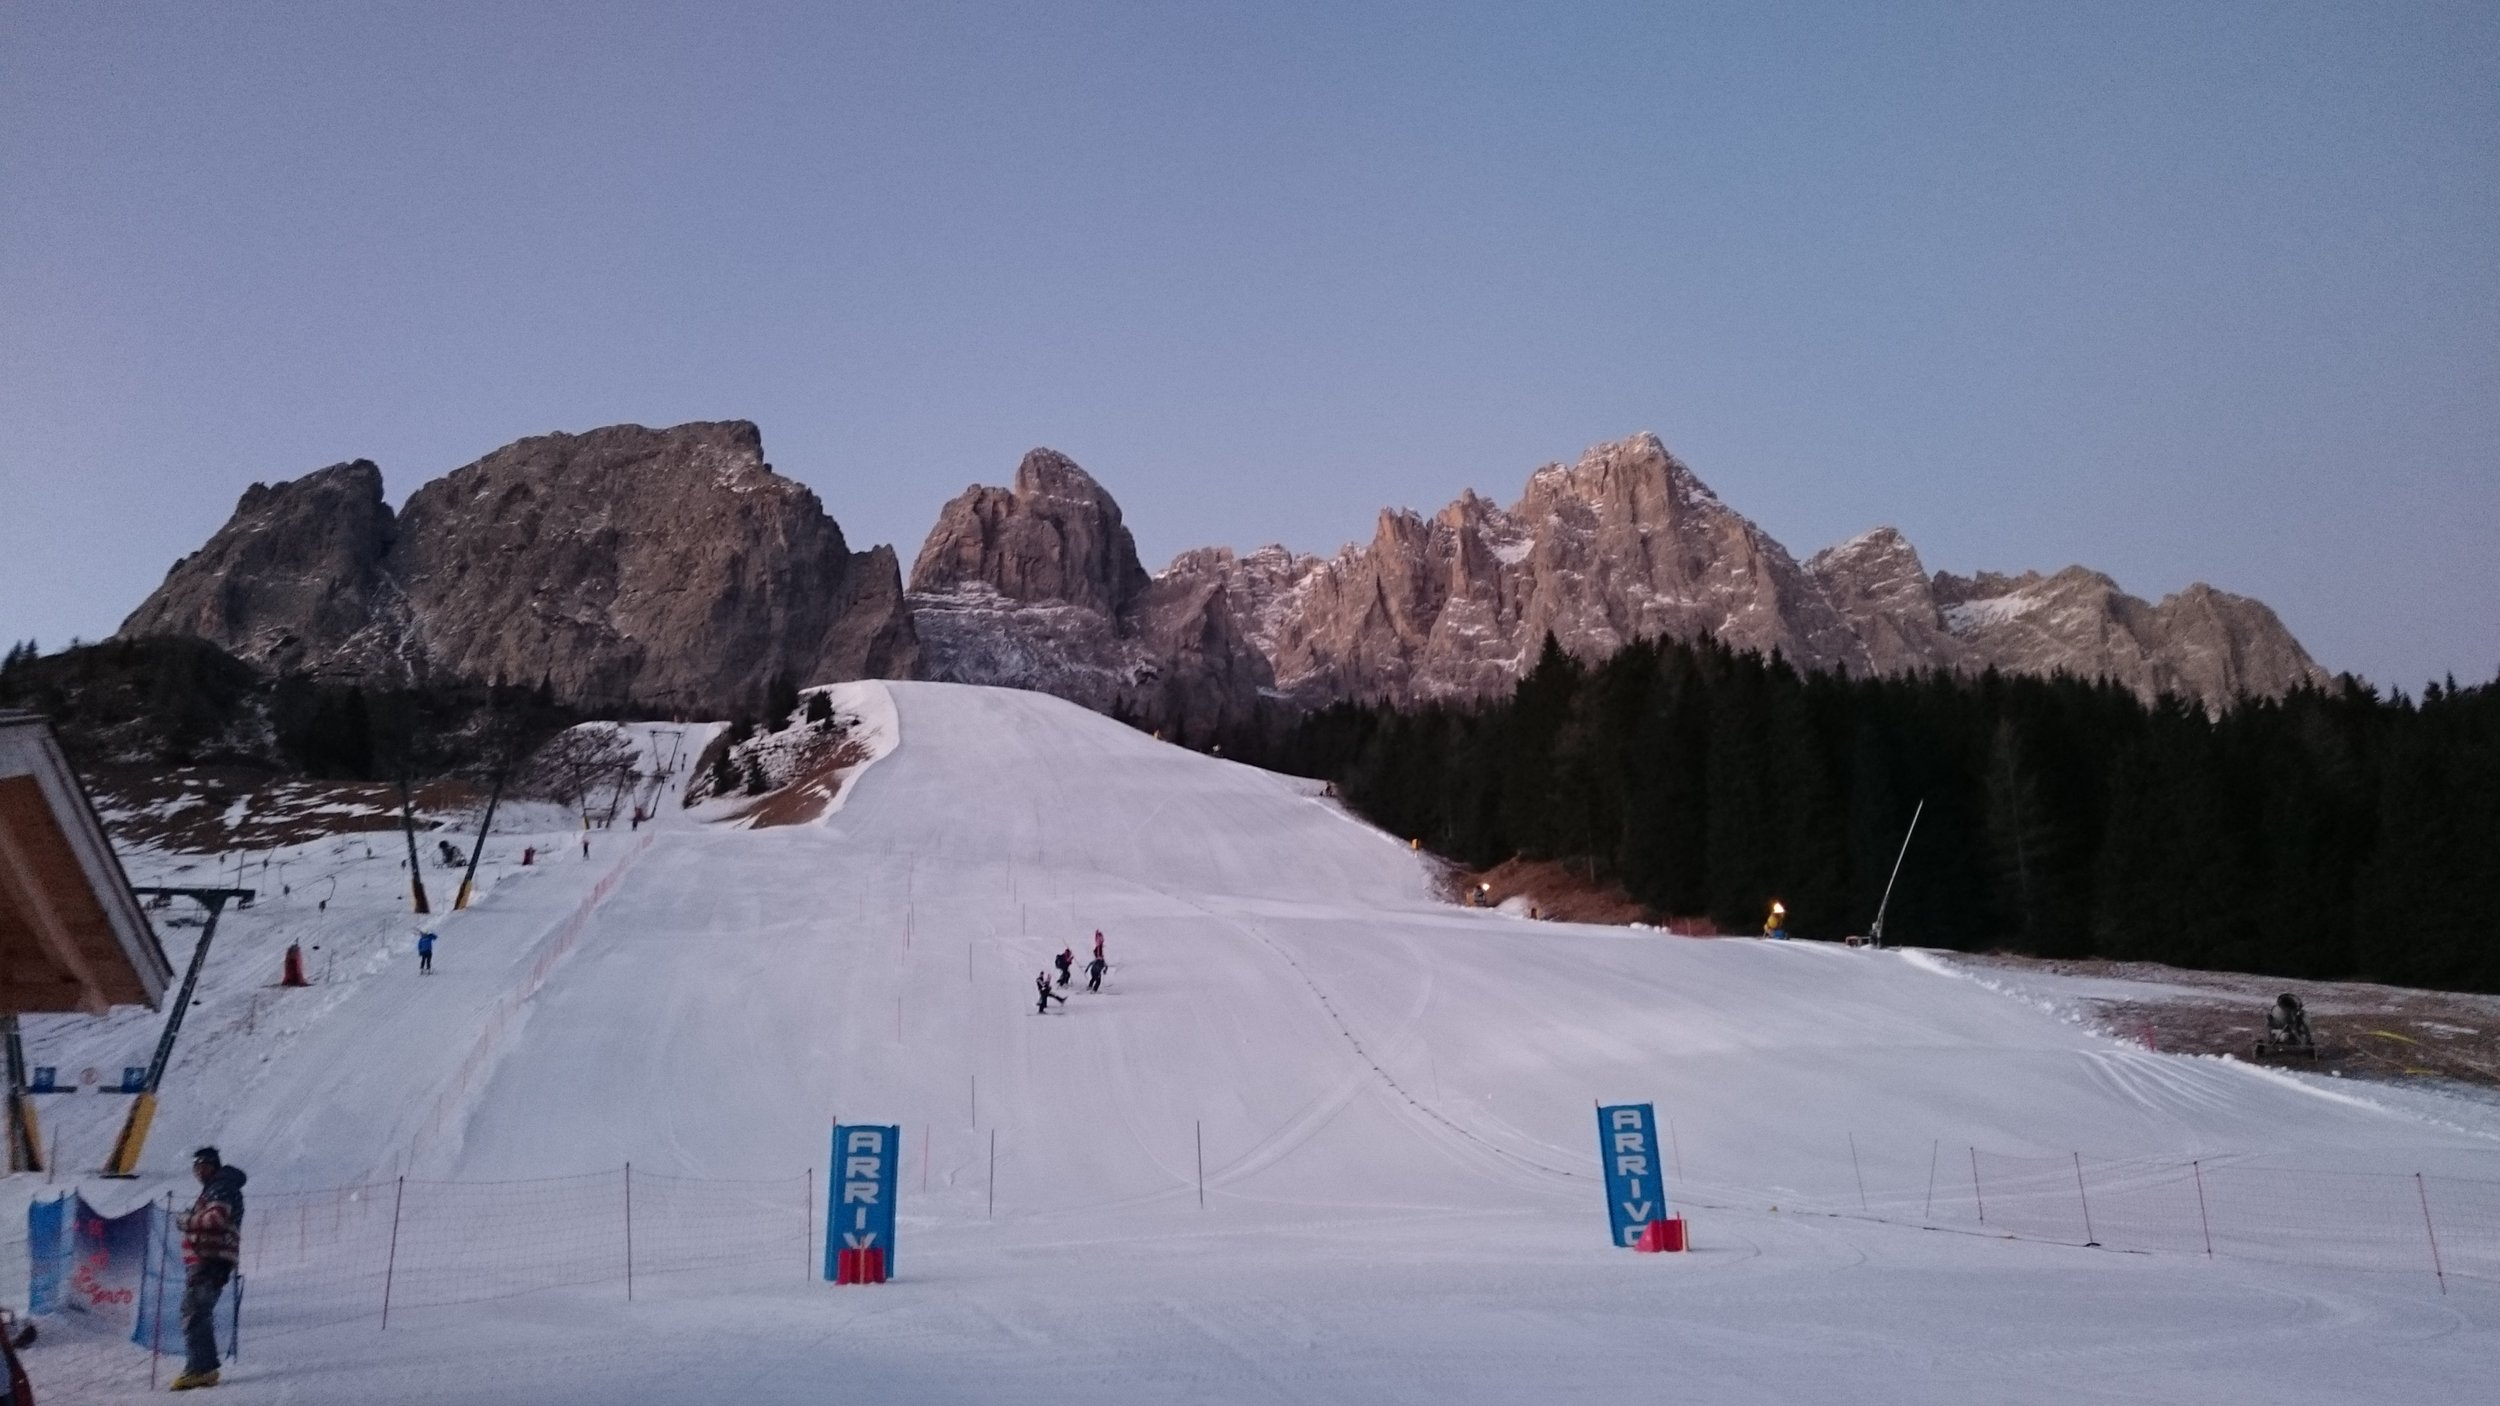 Racing with the view of the Dolomites in Italy